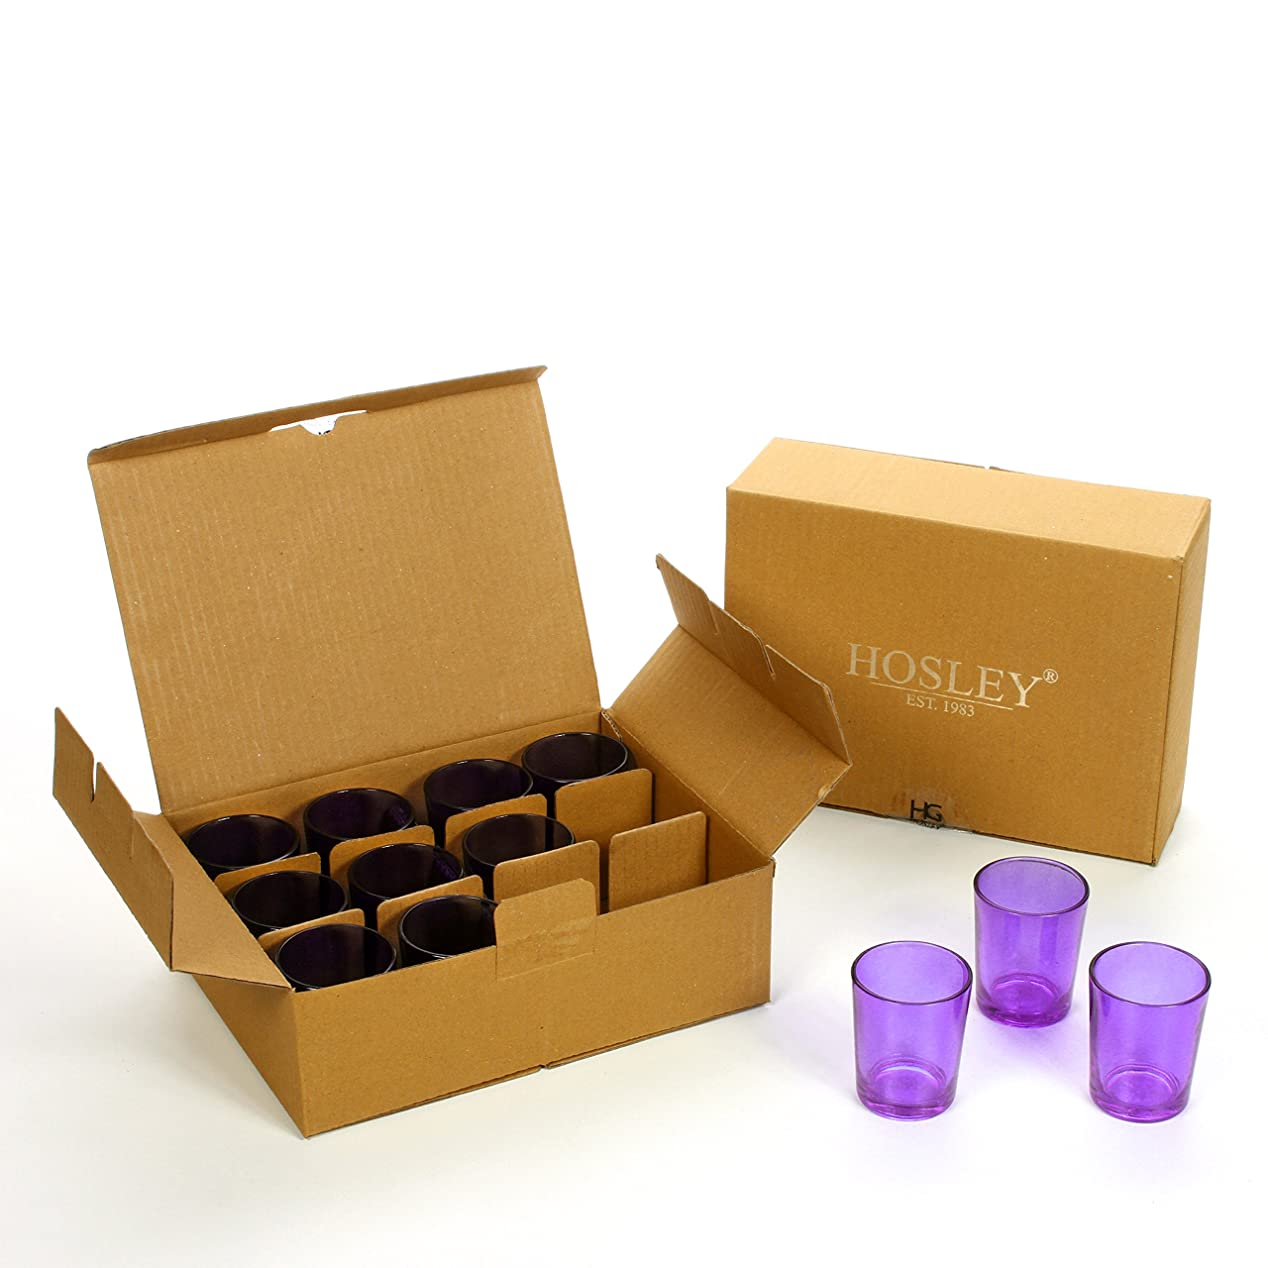 新着変色するペースHosley's Set of 24 Purple Glass Votive/Tea Light Holders. Ideal for Weddings, Parties, Spa & Aromatherapy, Votive Candle Gardens. Use with Hosley Tea Lights, Bulk Buy